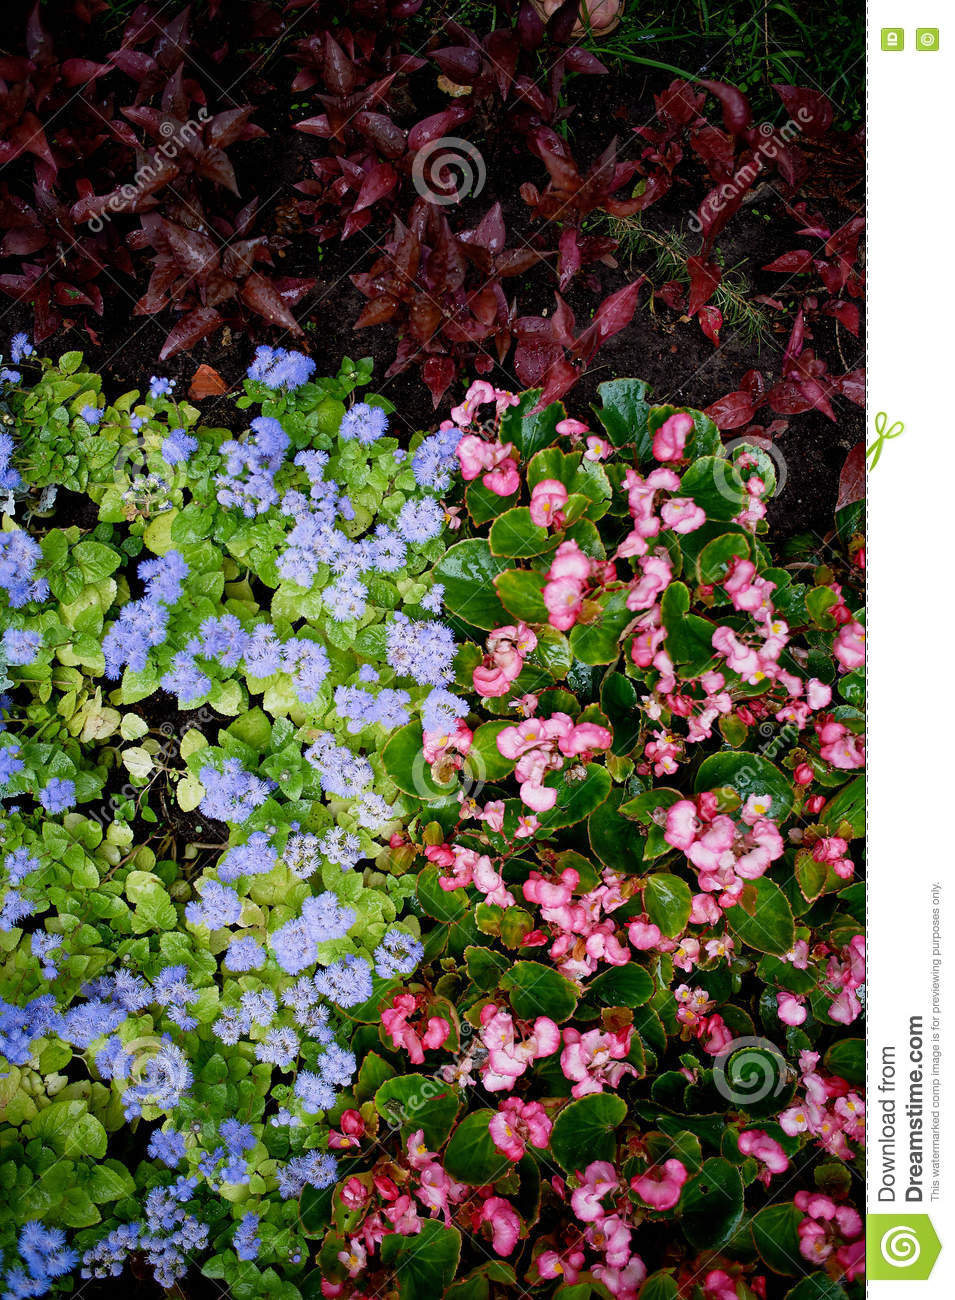 Texture of groundcover plants and flowers blue pink green leaves texture of groundcover plants and flowers blue pink green leaves izmirmasajfo